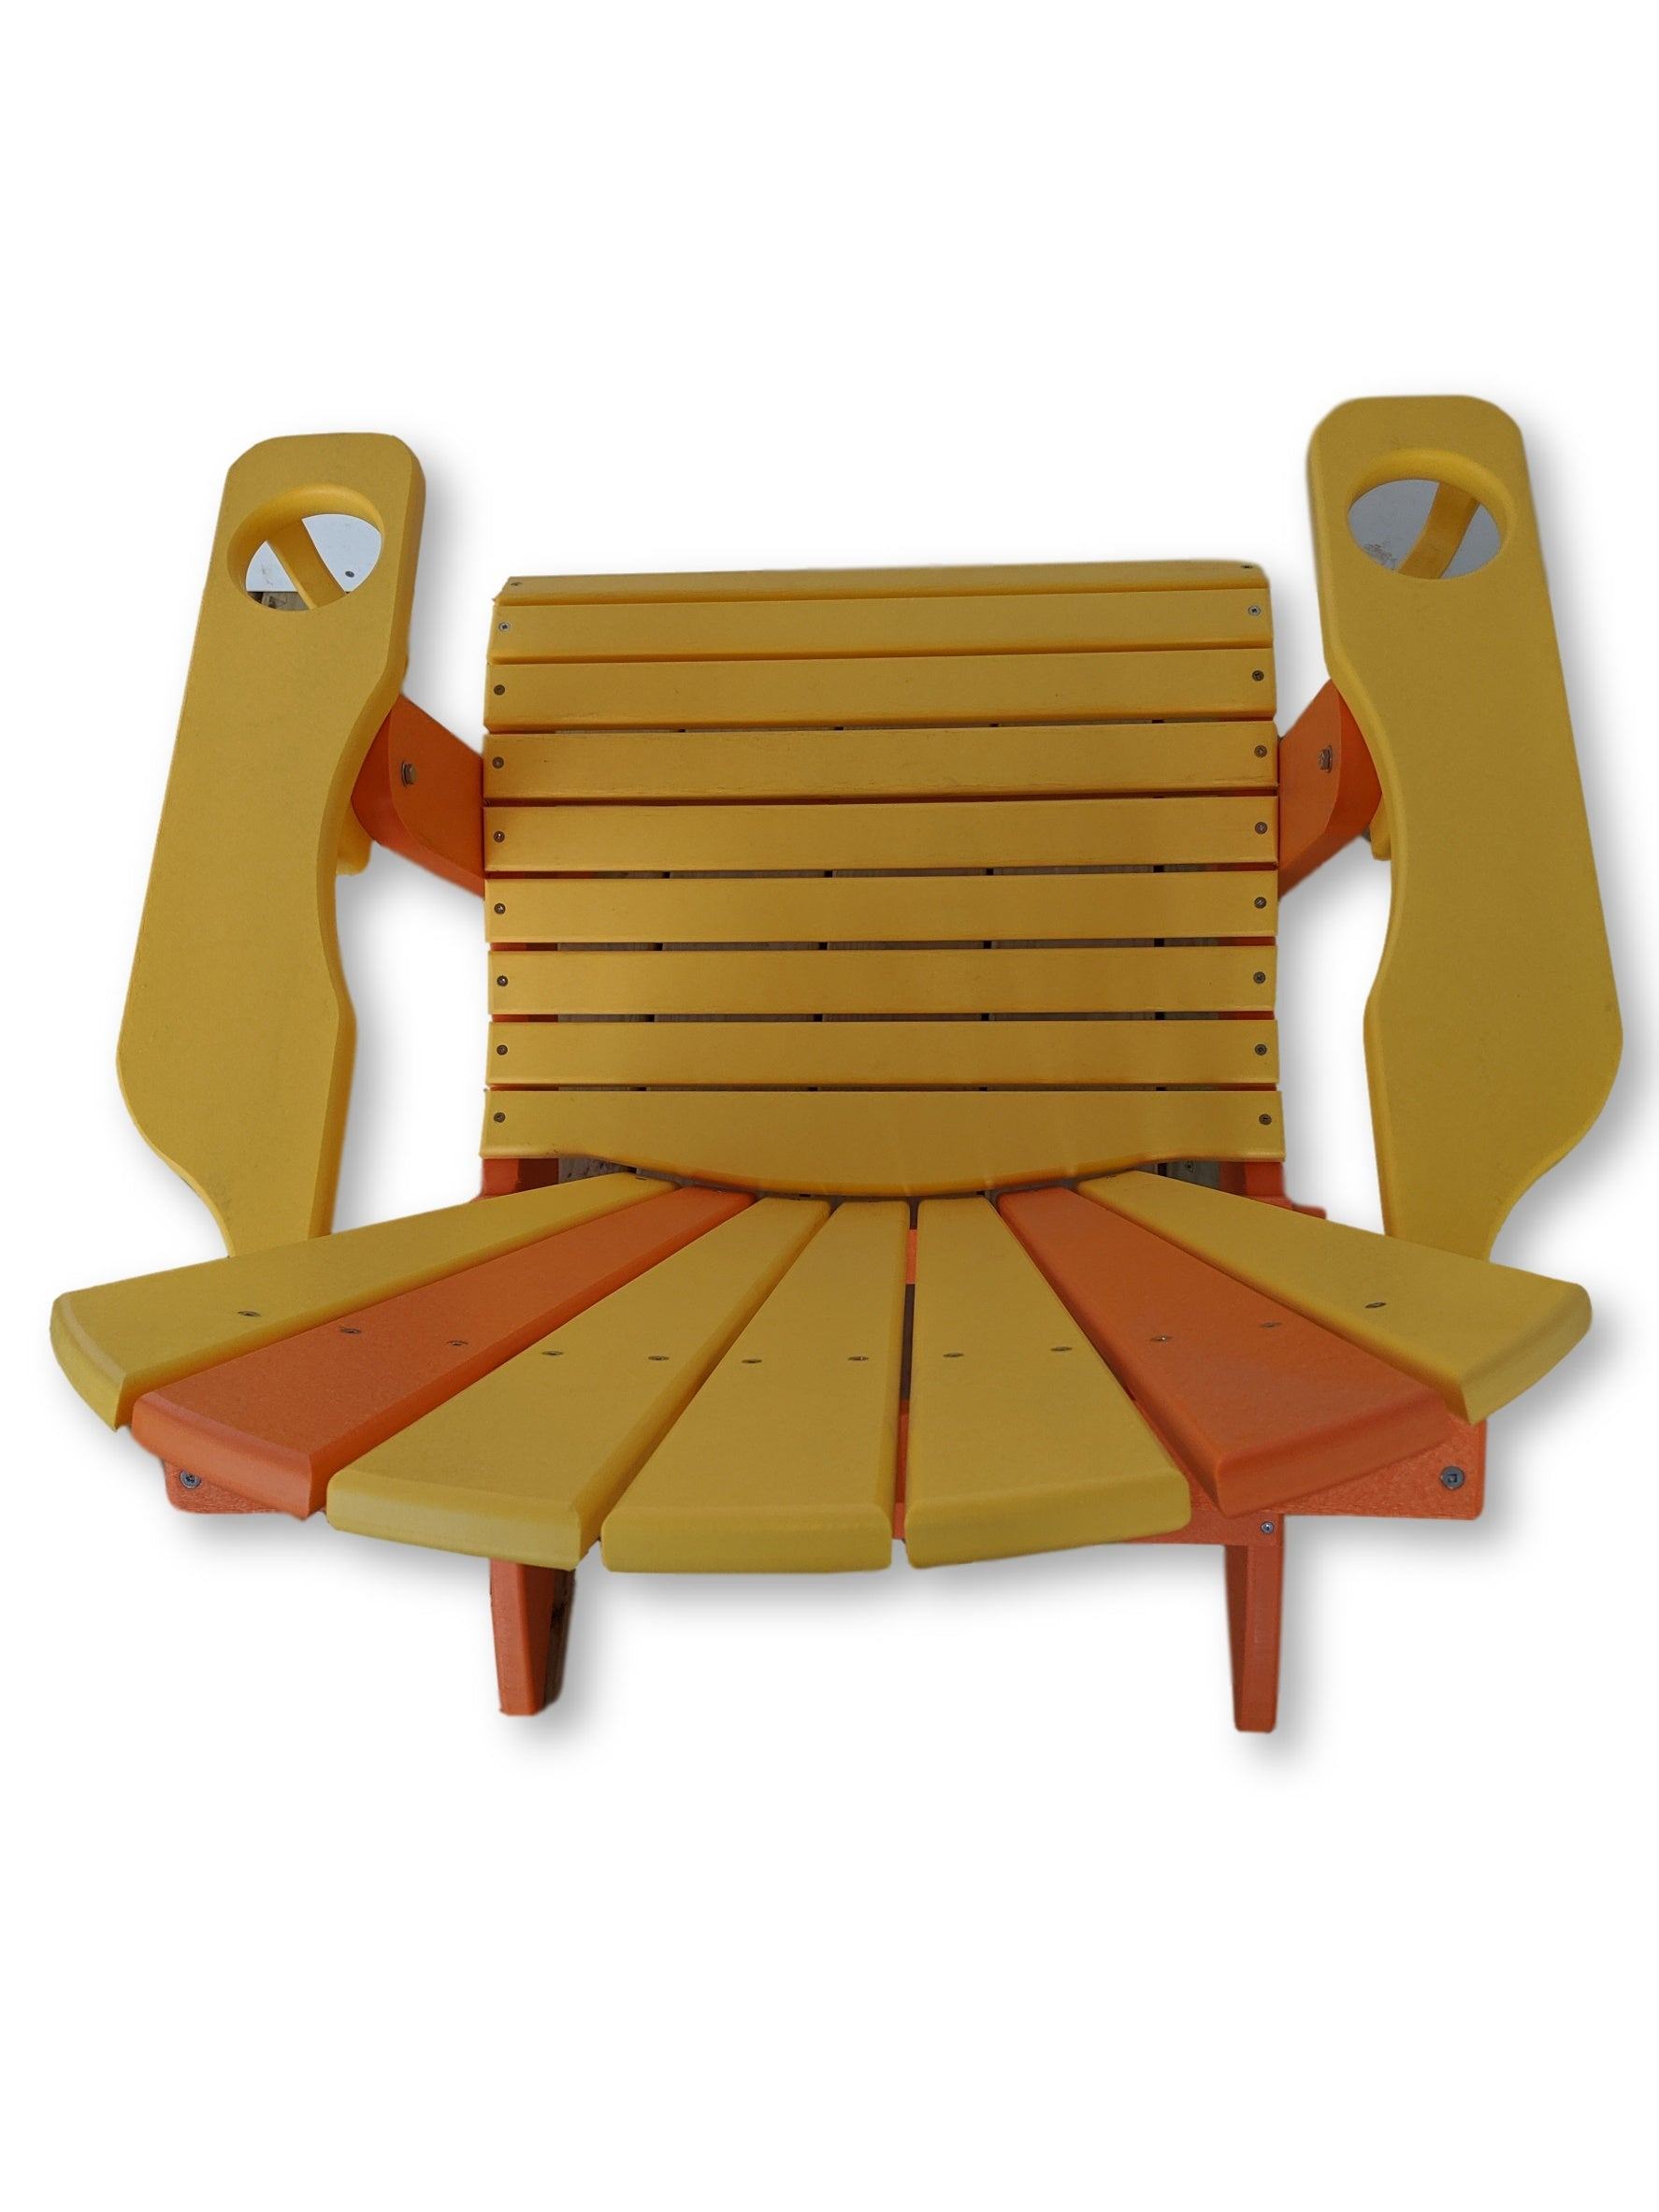 Yellow Orange Folding Adirondack Chair with Cup Holders